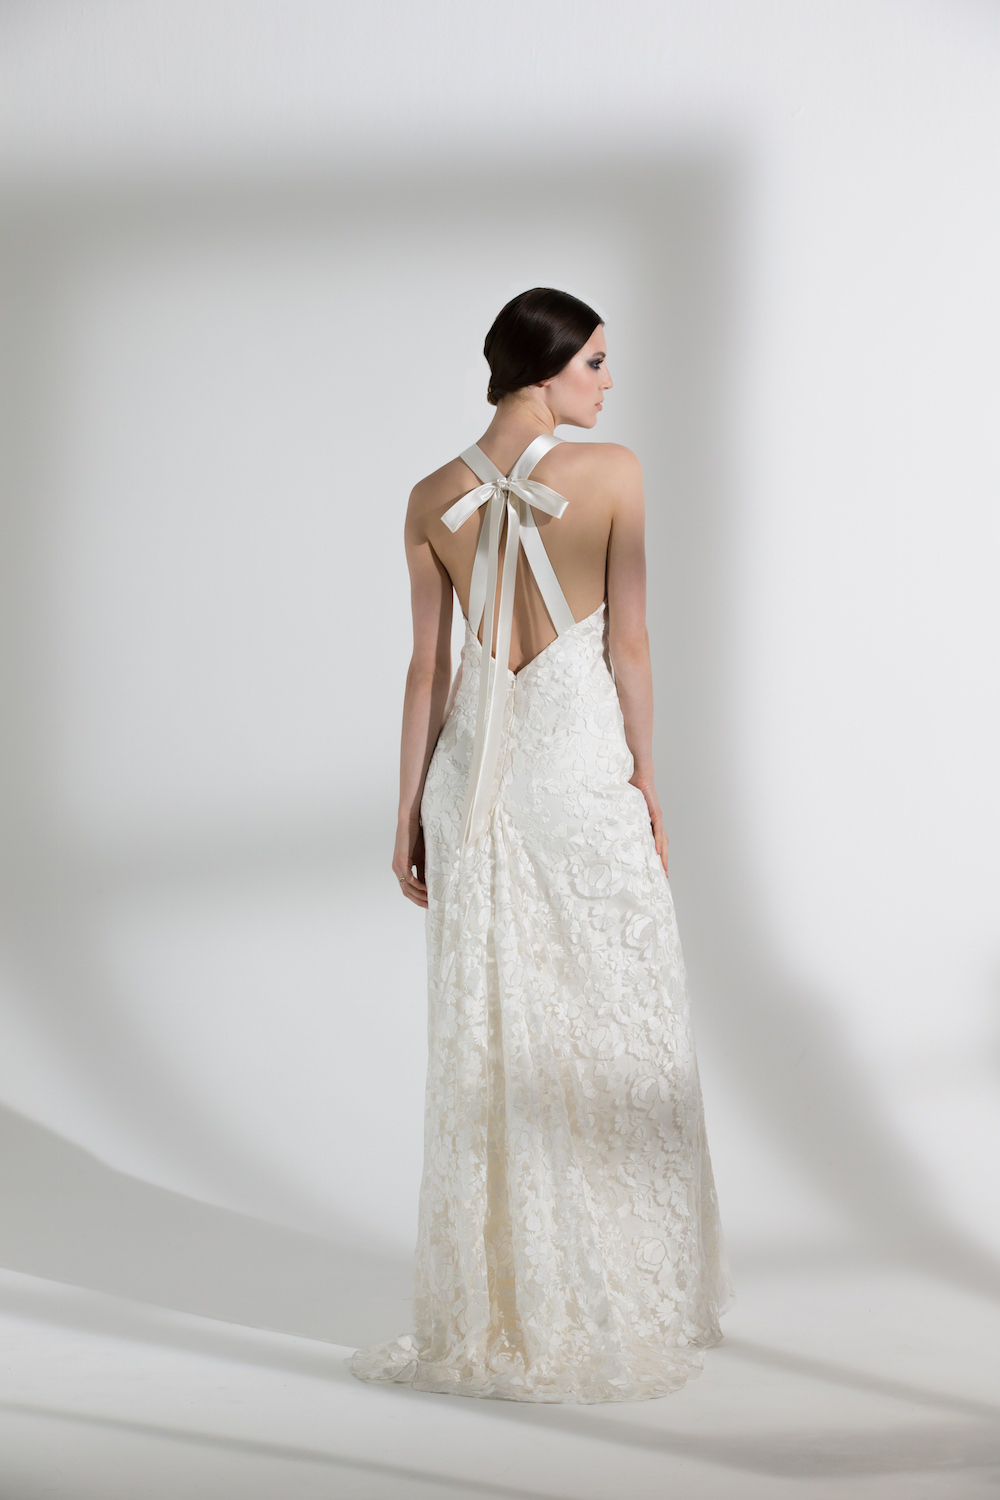 PRIMROSE DRESS | WEDDING DRESS BY HALFPENNY LONDON